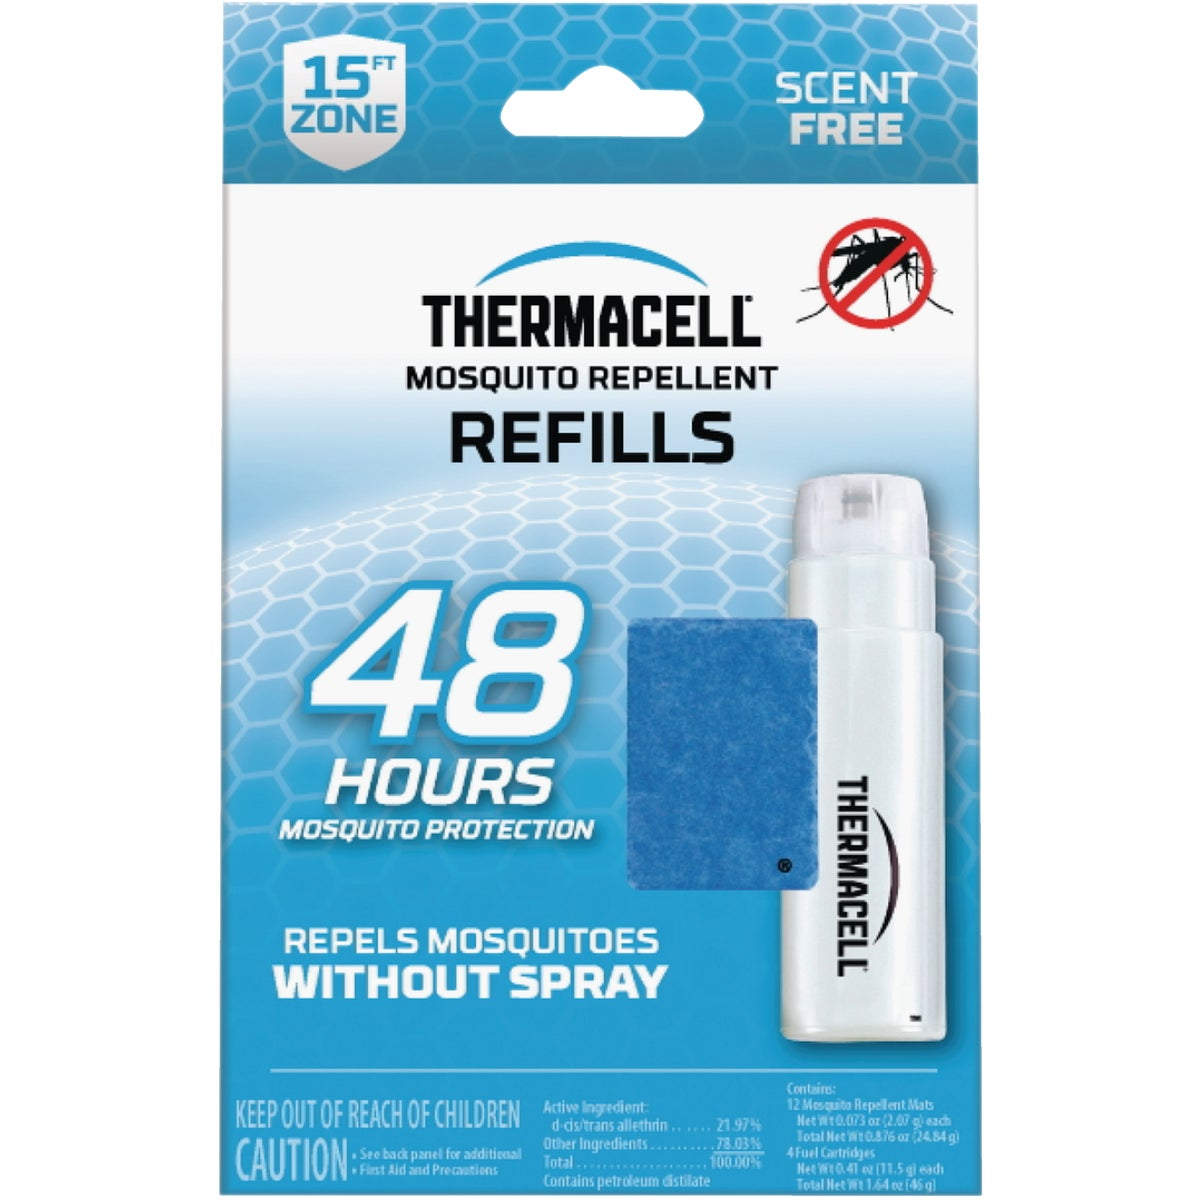 Schawbel Corp 4 PAK THERMACELL REFILL MR400-12